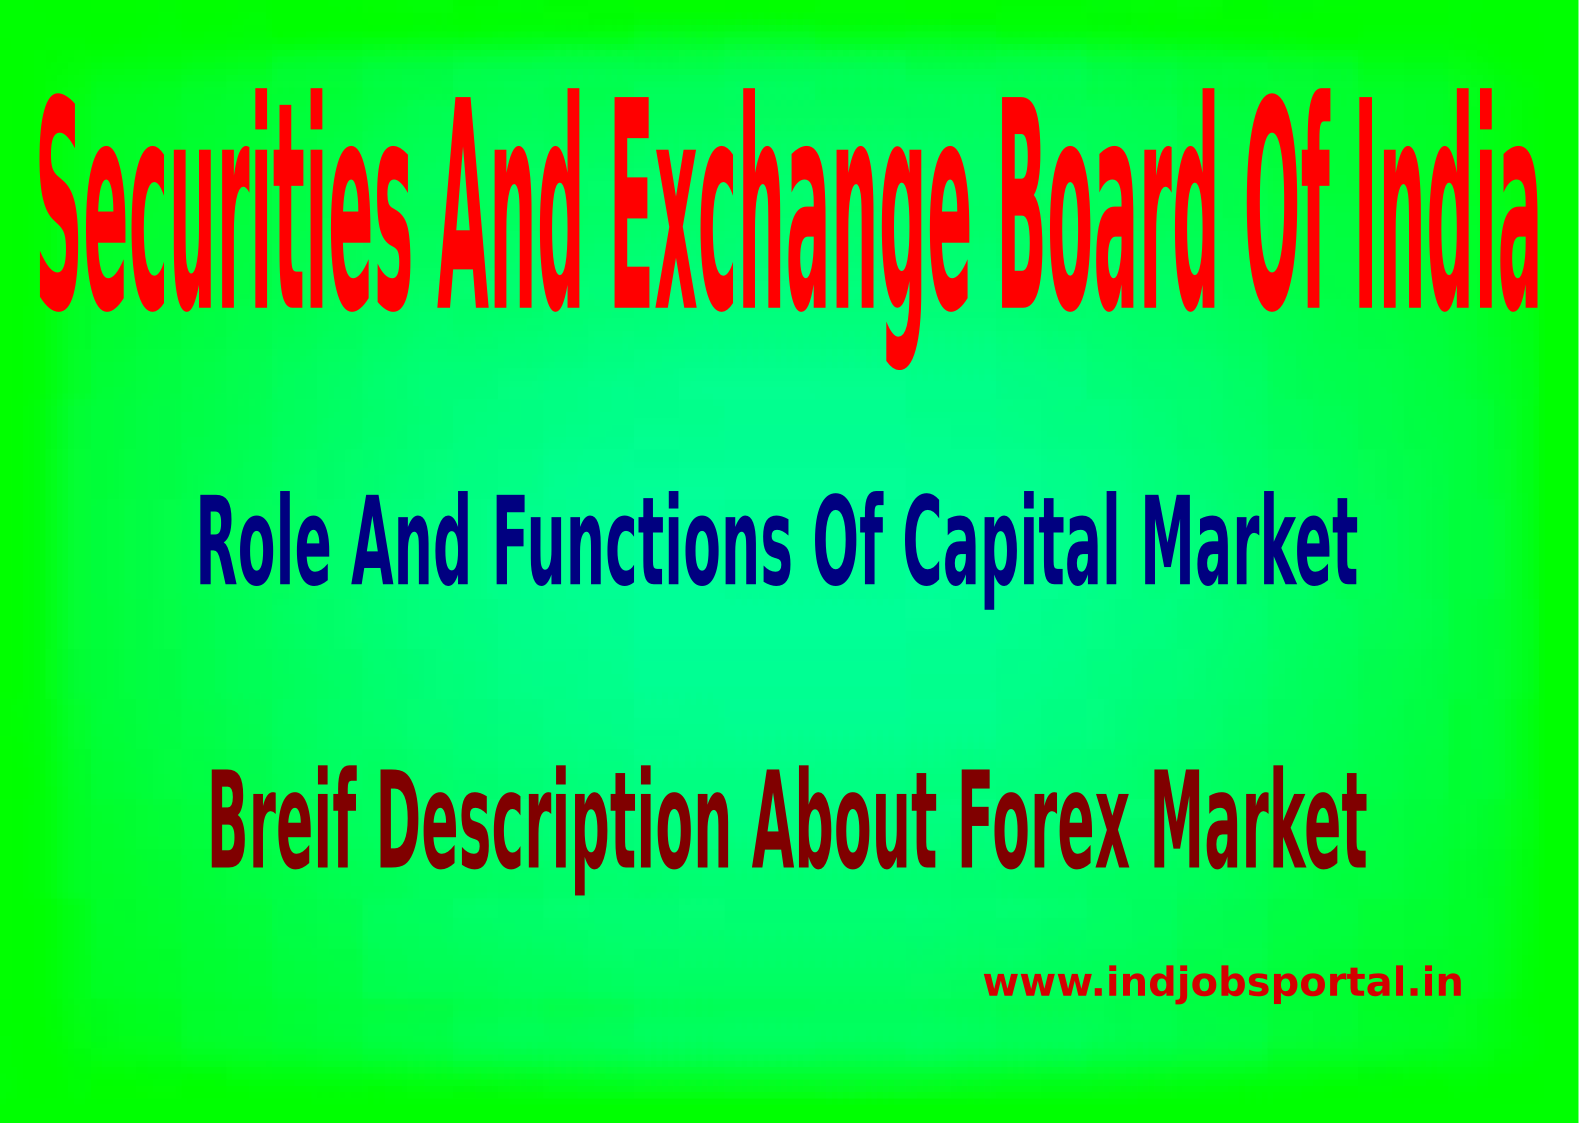 the role of capital market essay Today most economies around the world are judged by the performance of their capital markets the potential role of financial markets in economic.